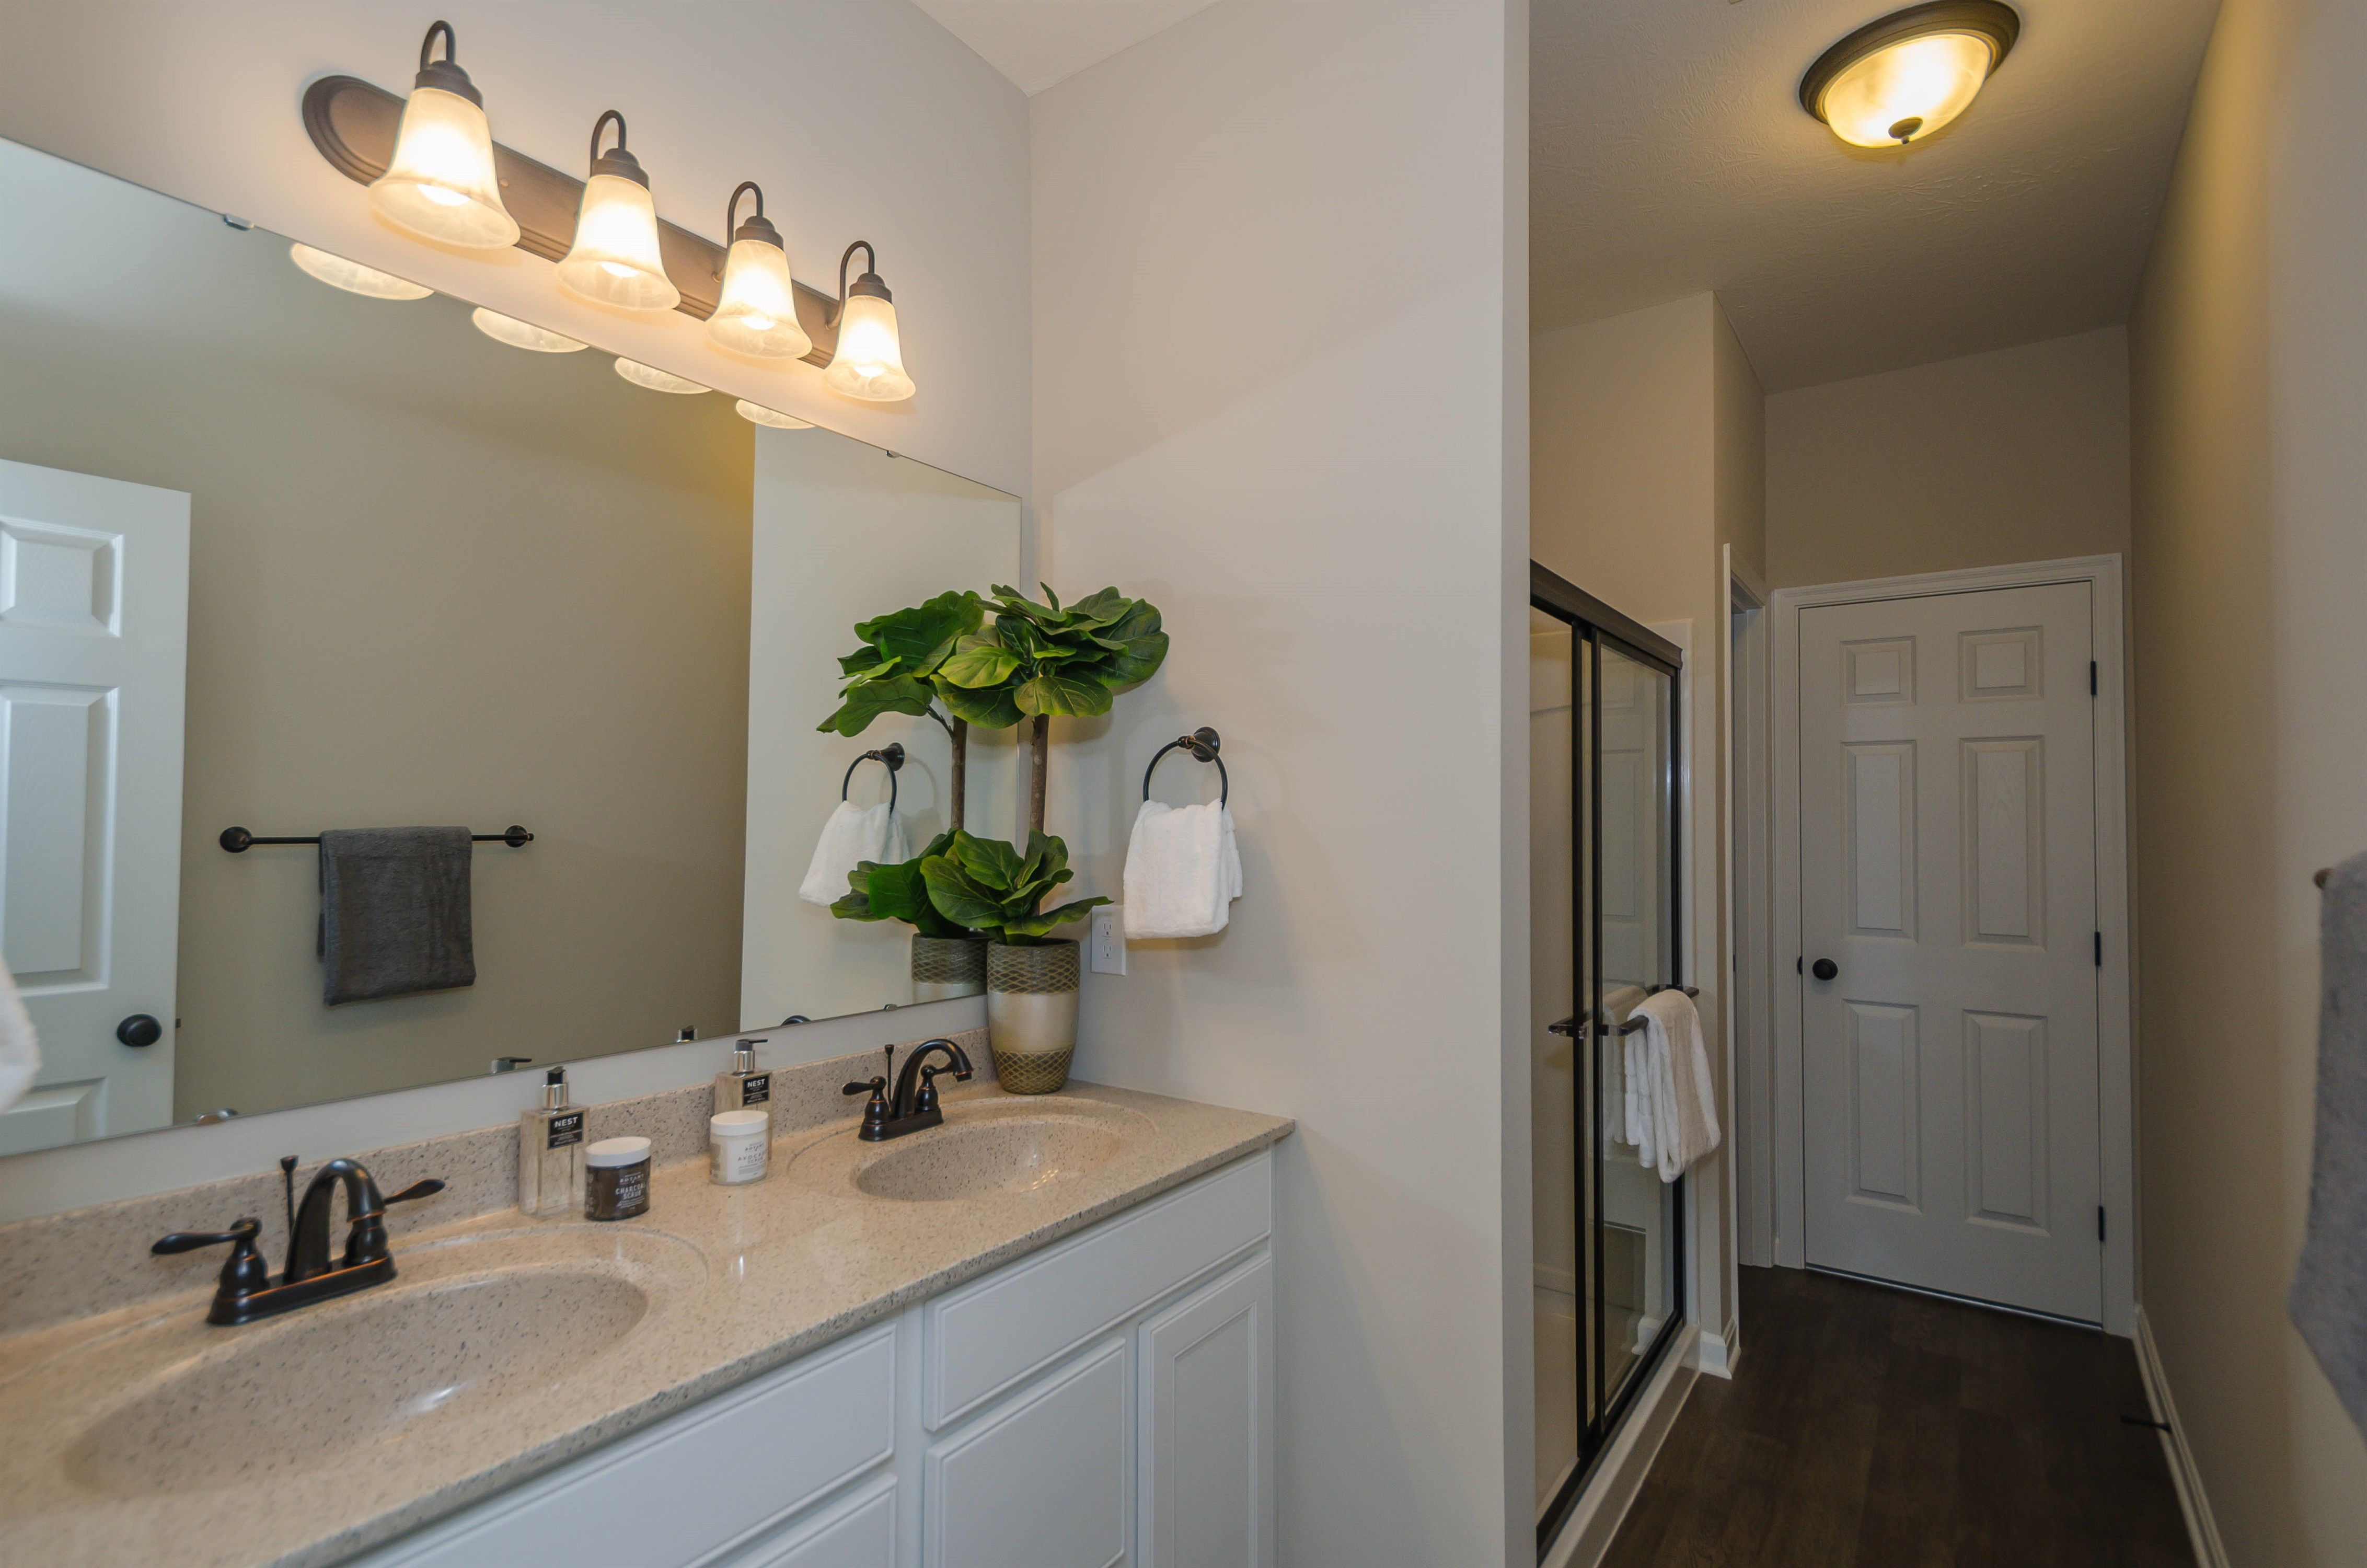 Bathroom featured in the Wembley By Fischer Homes  in Cincinnati, OH